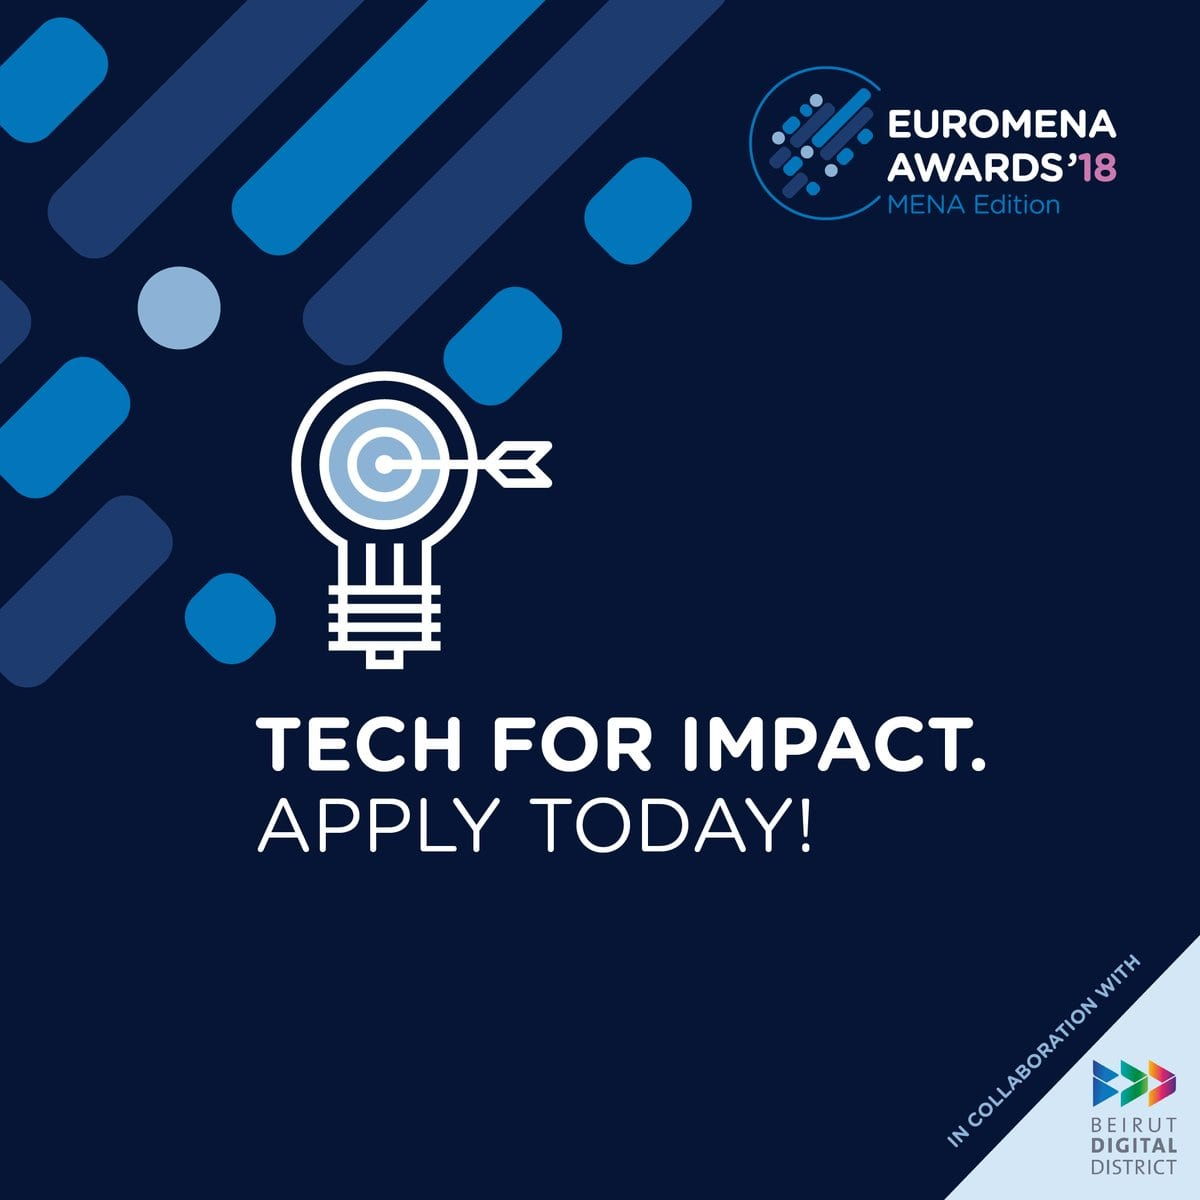 Euromena Awards 2018 for start-ups promoting ICT and social advancement in MENA area (15,000 USD Reward)